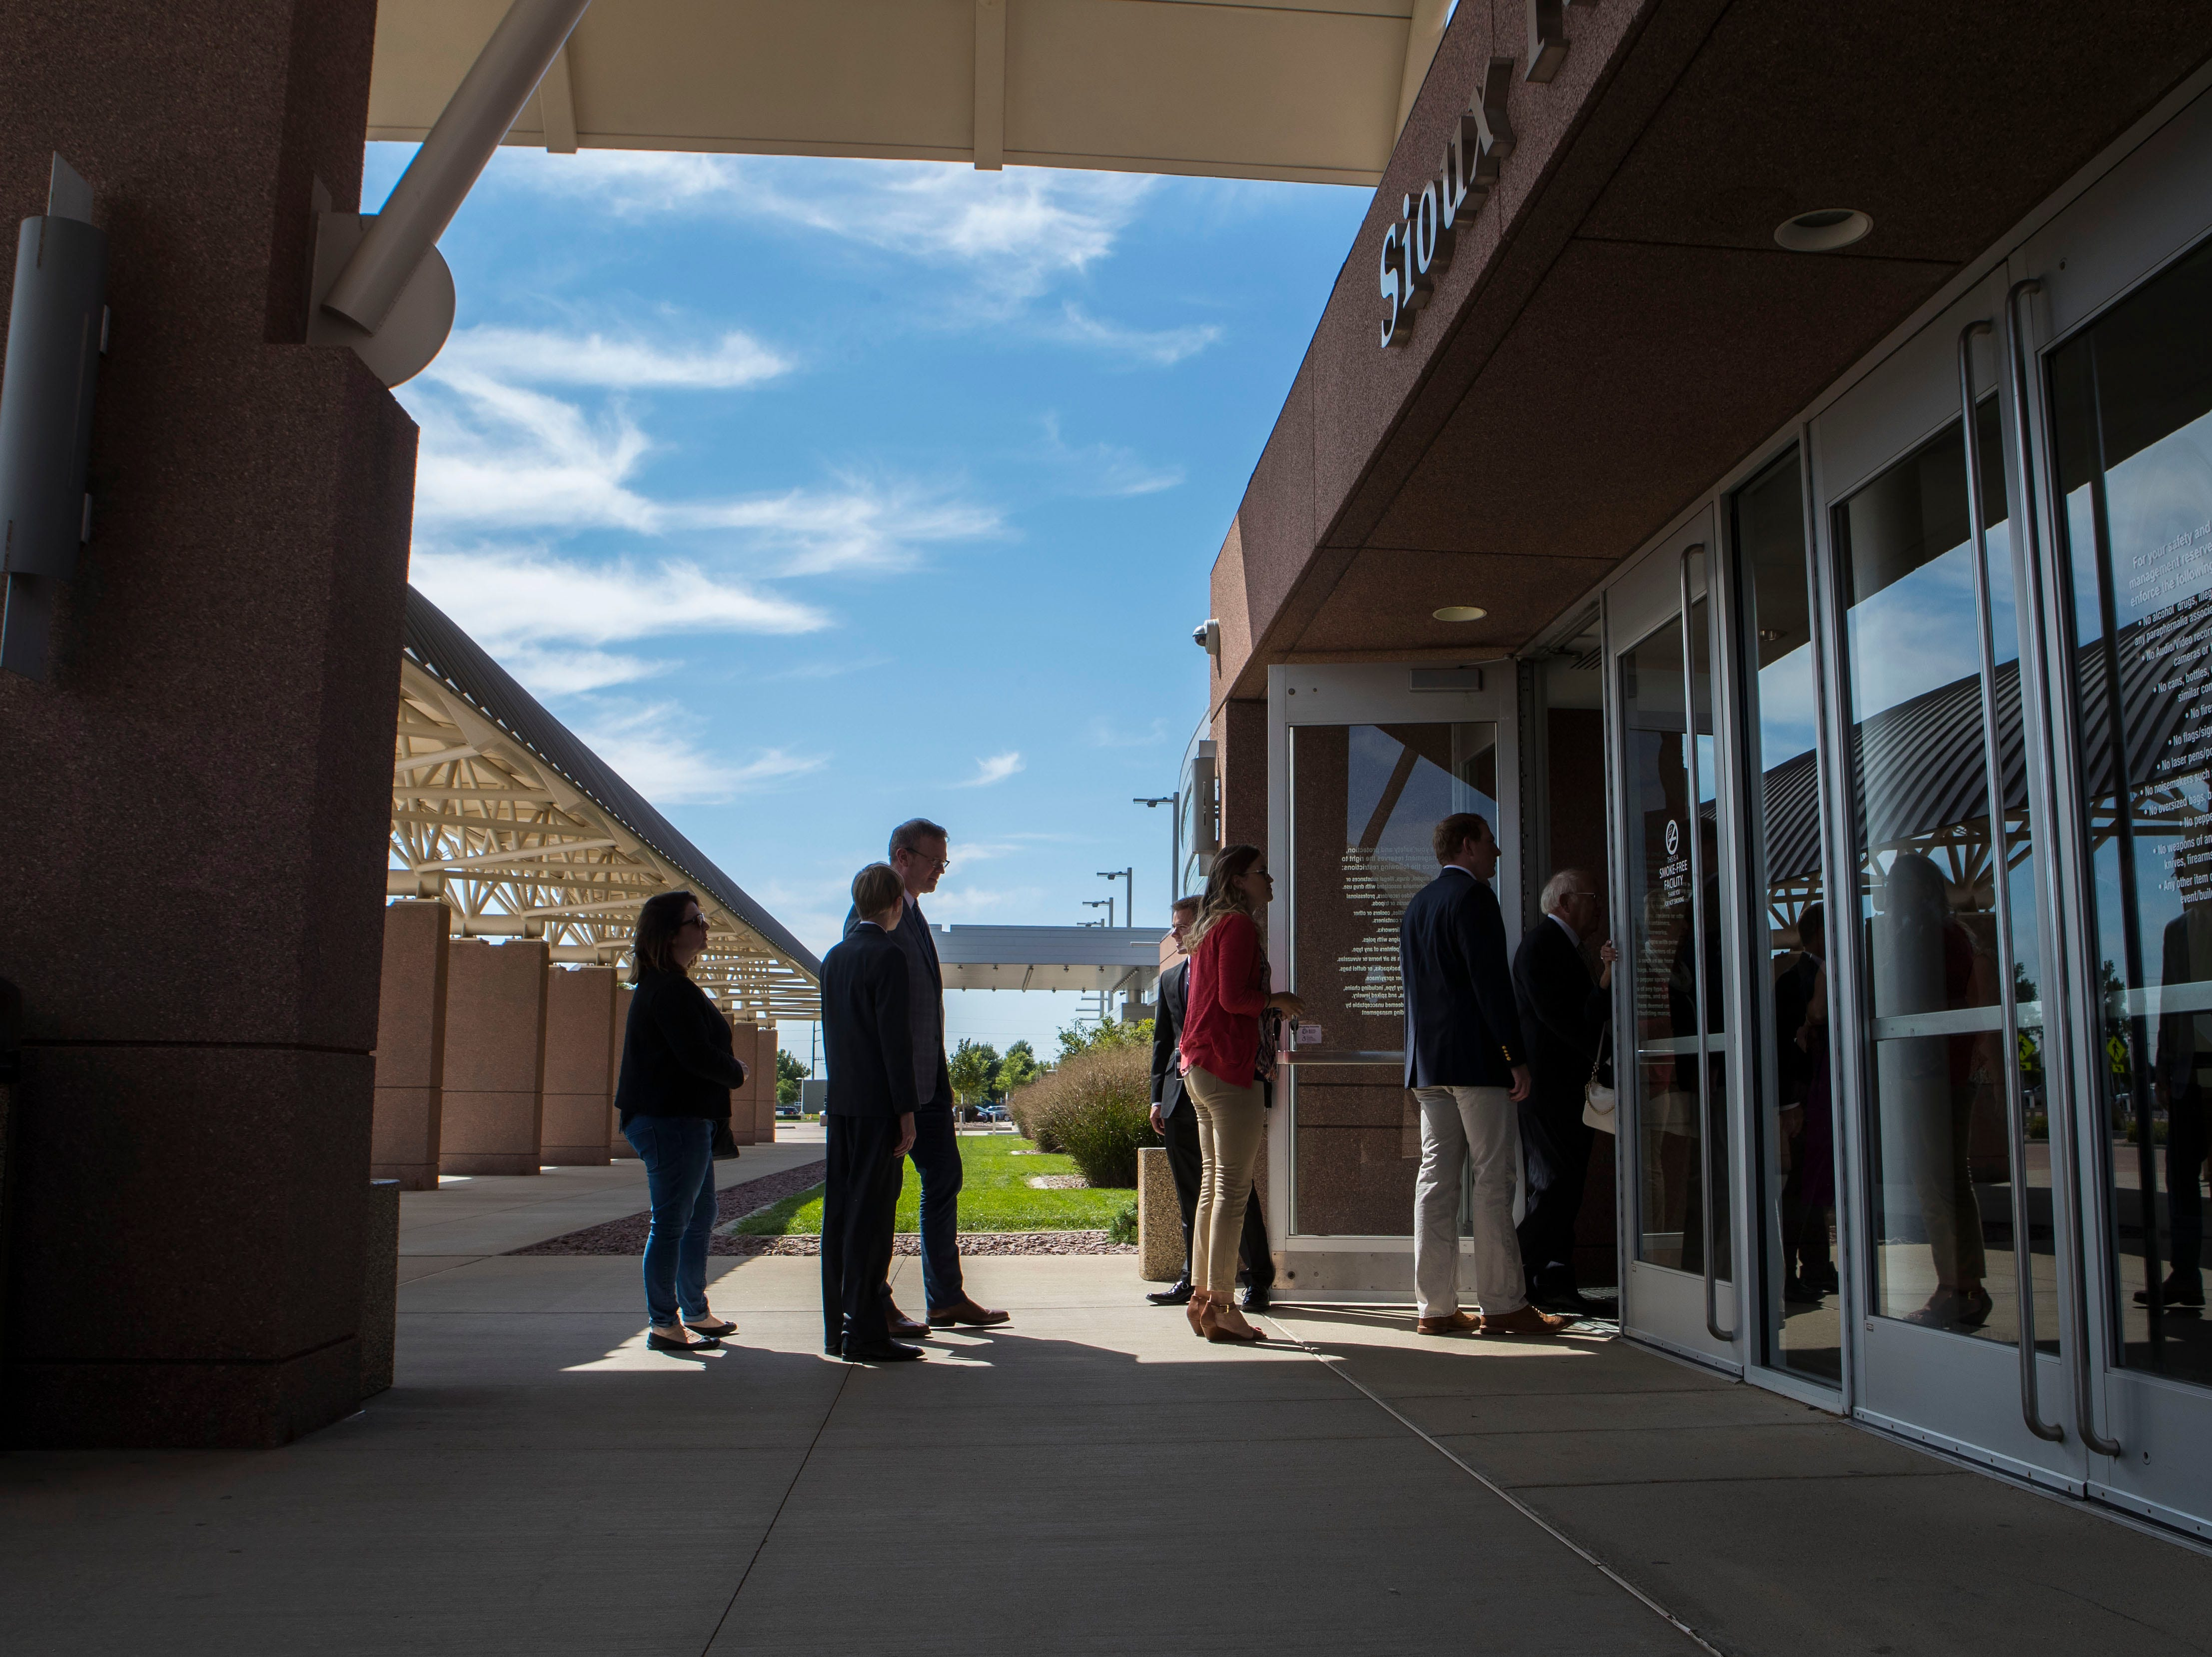 People stand in line at the Sioux Falls Convention Center for the closed-door fundraiser where President Donald Trump will be attending in support of Republican gubernatorial hopeful Kristi Noem on Friday, Sept. 7, 2018 in Sioux Falls, S.D.